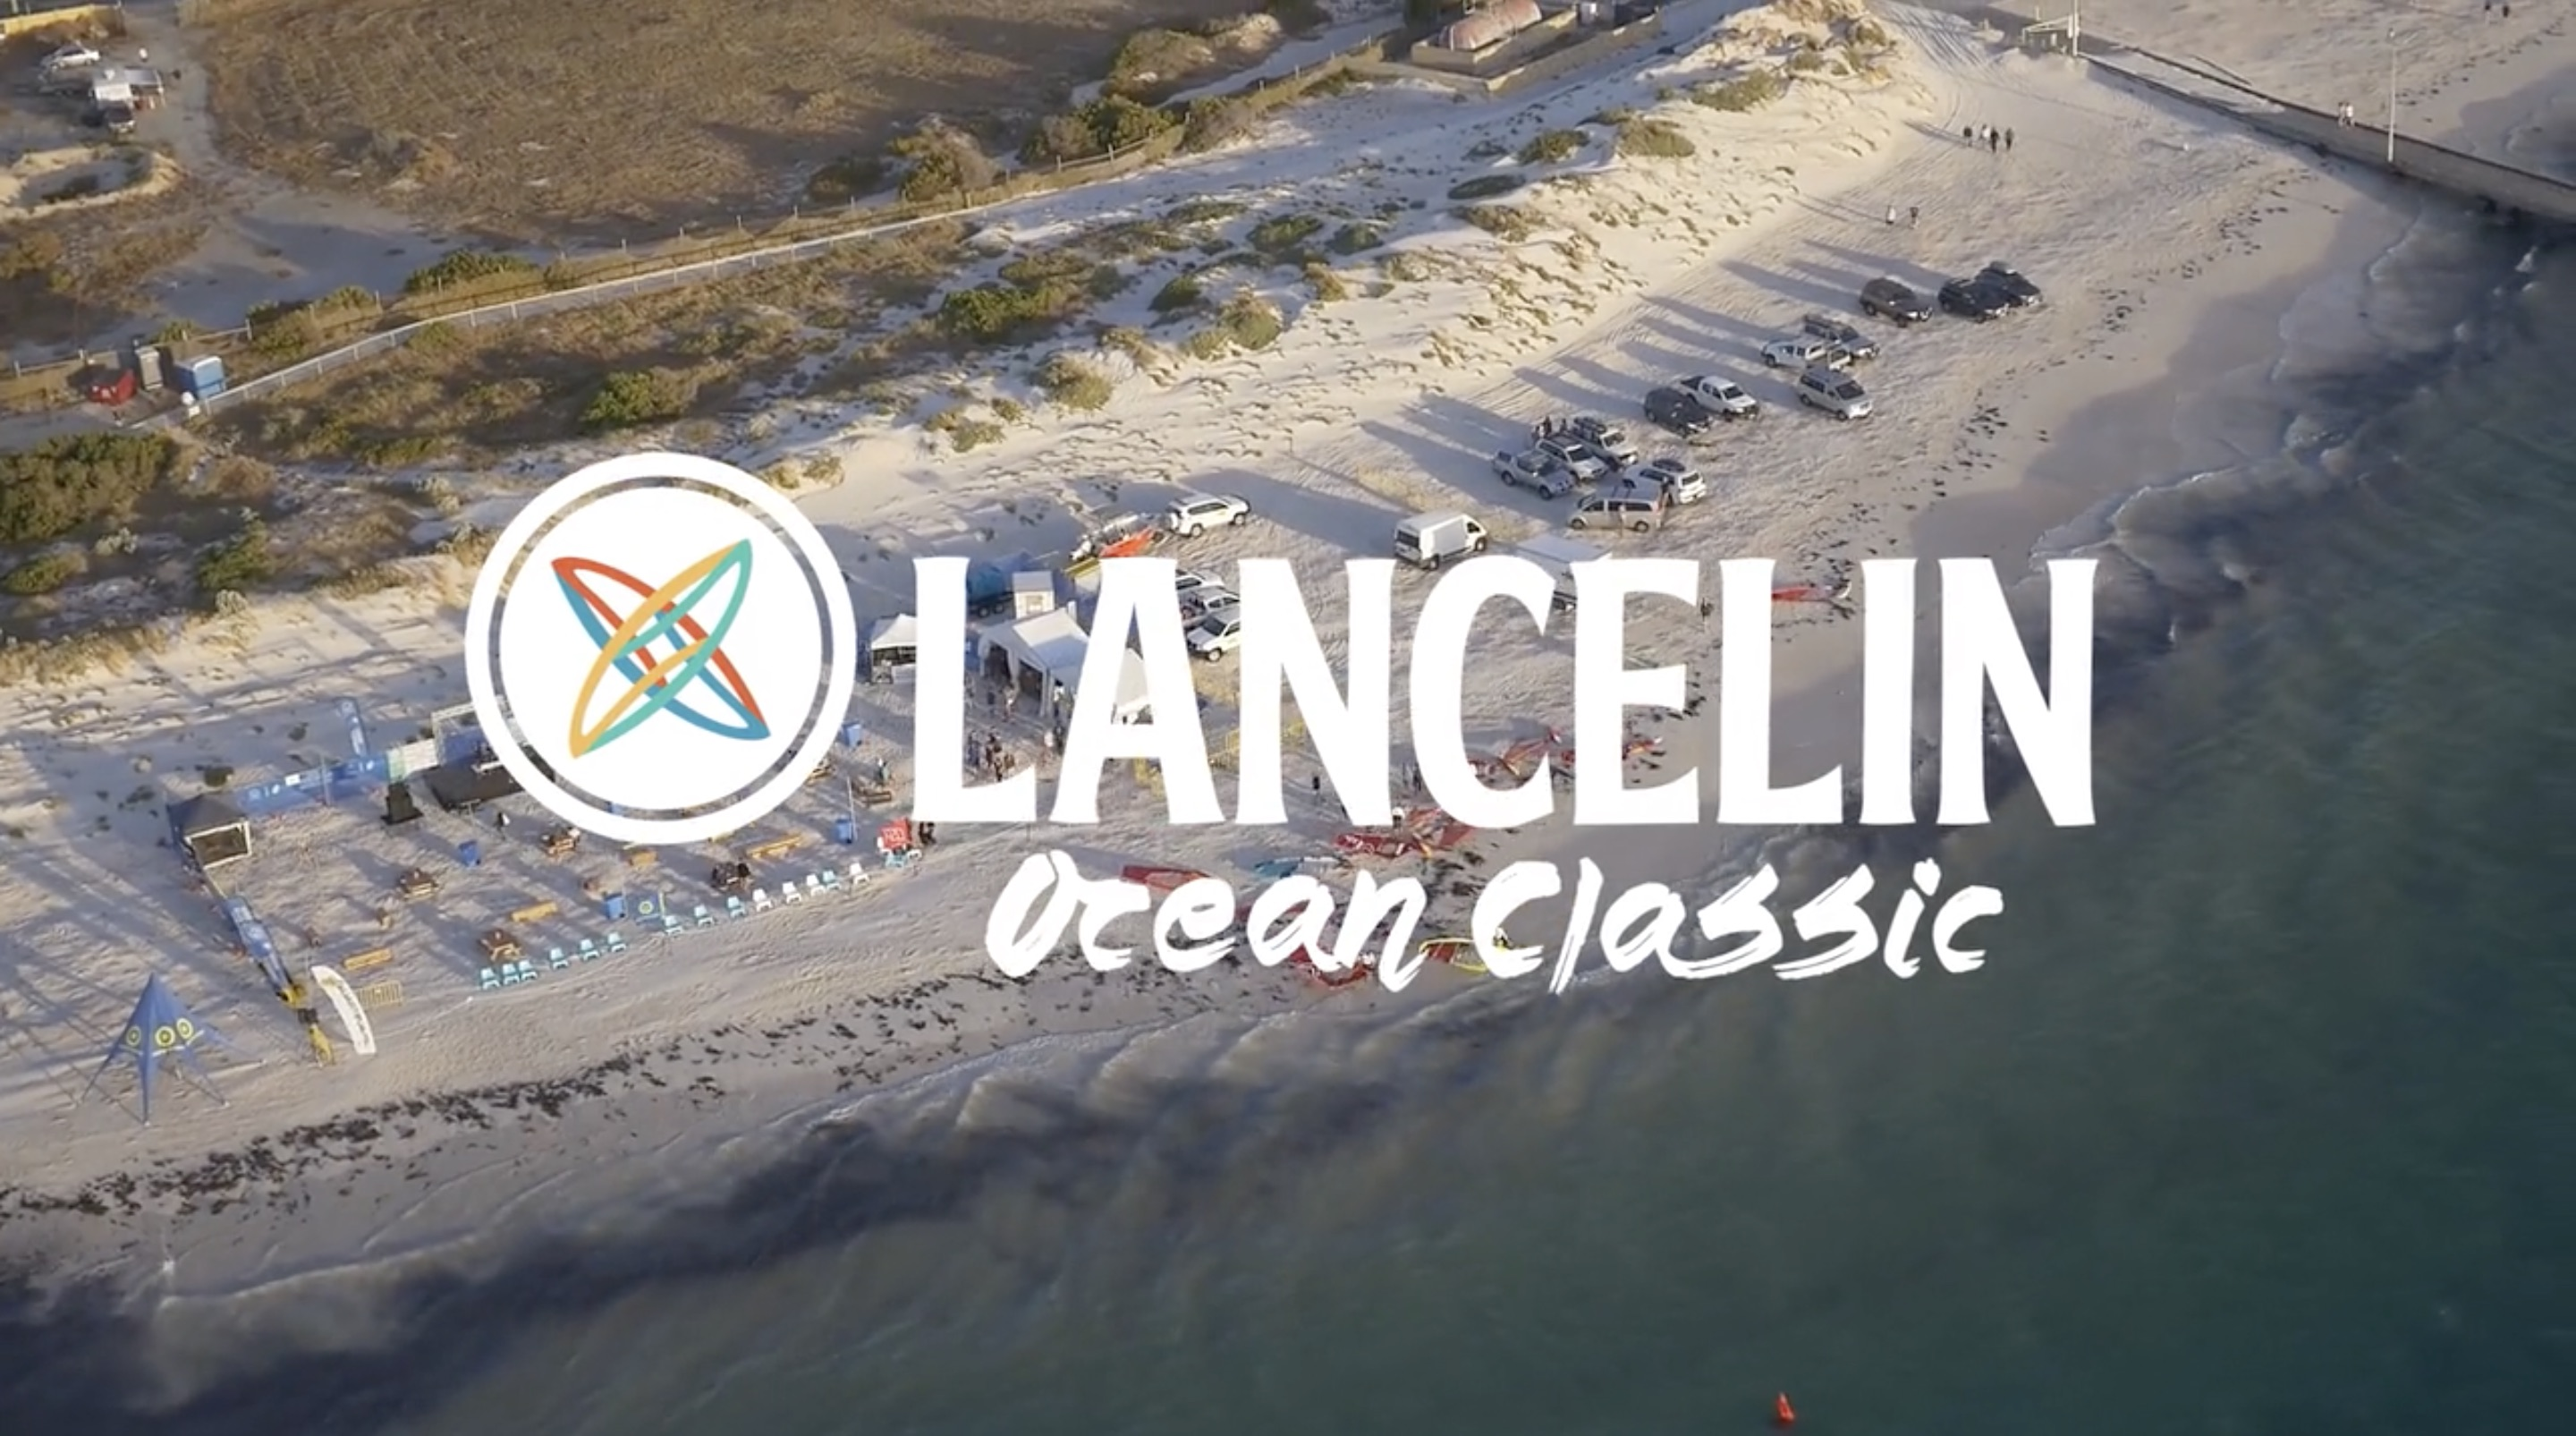 Lancelin Ocean Classic | Windsurfing wave comp highlights | VIDEO